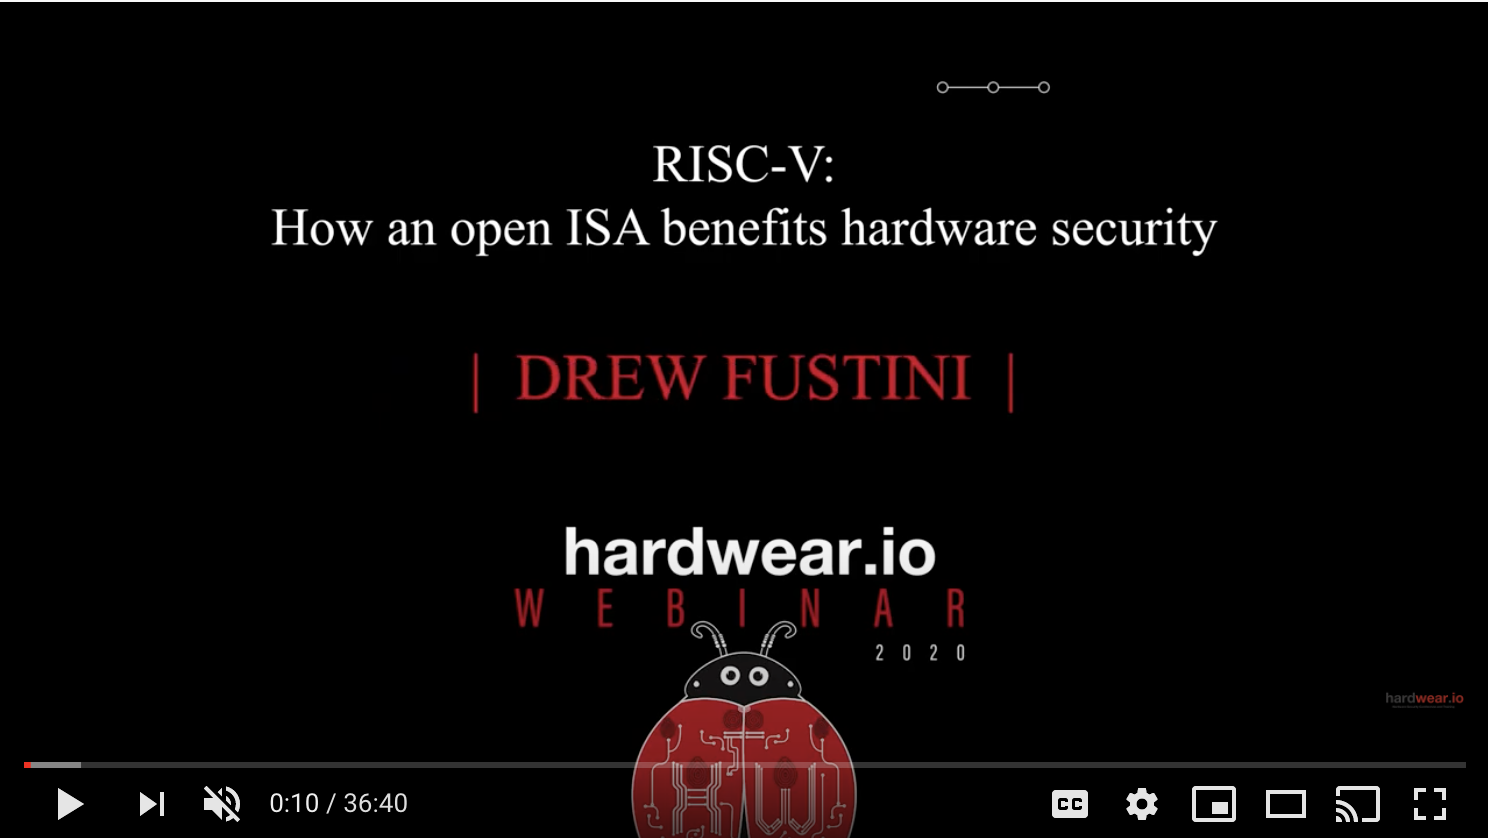 RISC-V: How an Open ISA Benefits Hardware Security | Drew Fustini | Hardwear.io Webinar (YouTube)